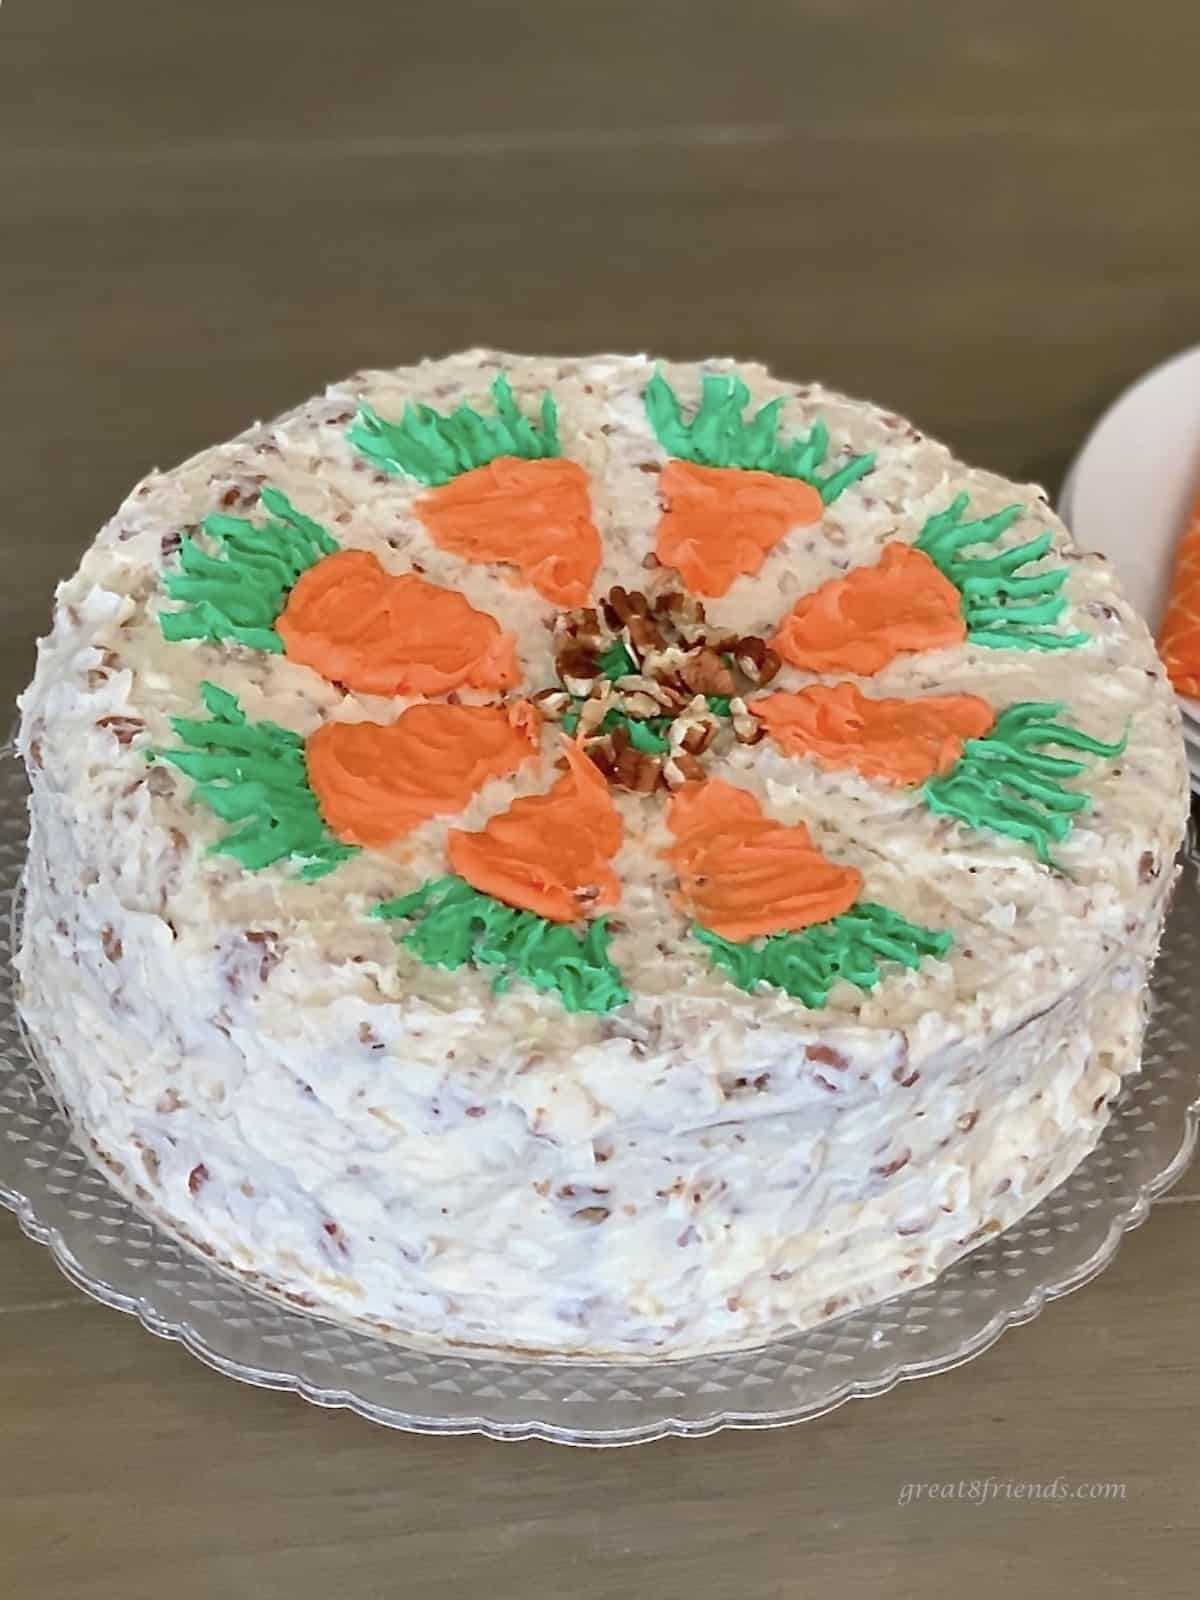 Two layer round carrot cake with pecan cream cheese frosting with pecans and decorated with icing carrots on the top.